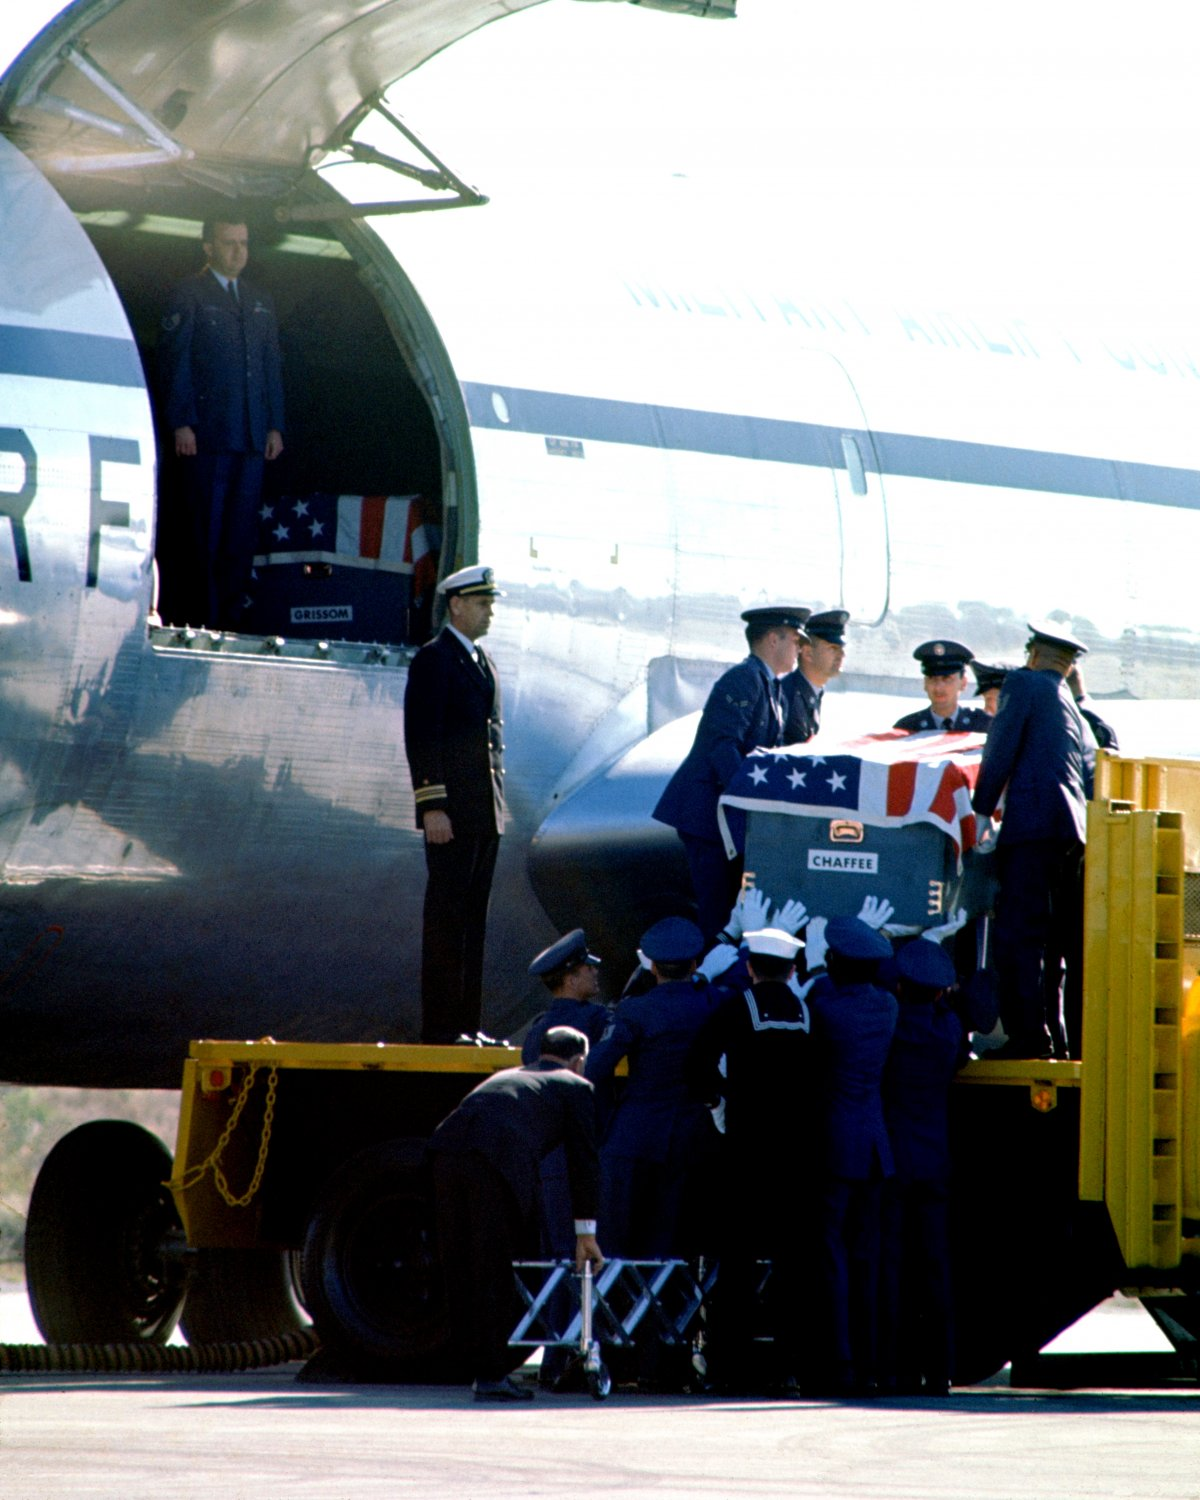 GUS GRISSOM ROGER CHAFFEE CASKETS ON KC-135 FOR TRANSPORT TO ARLINGTON - 8X10 NASA PHOTO (BB-961)